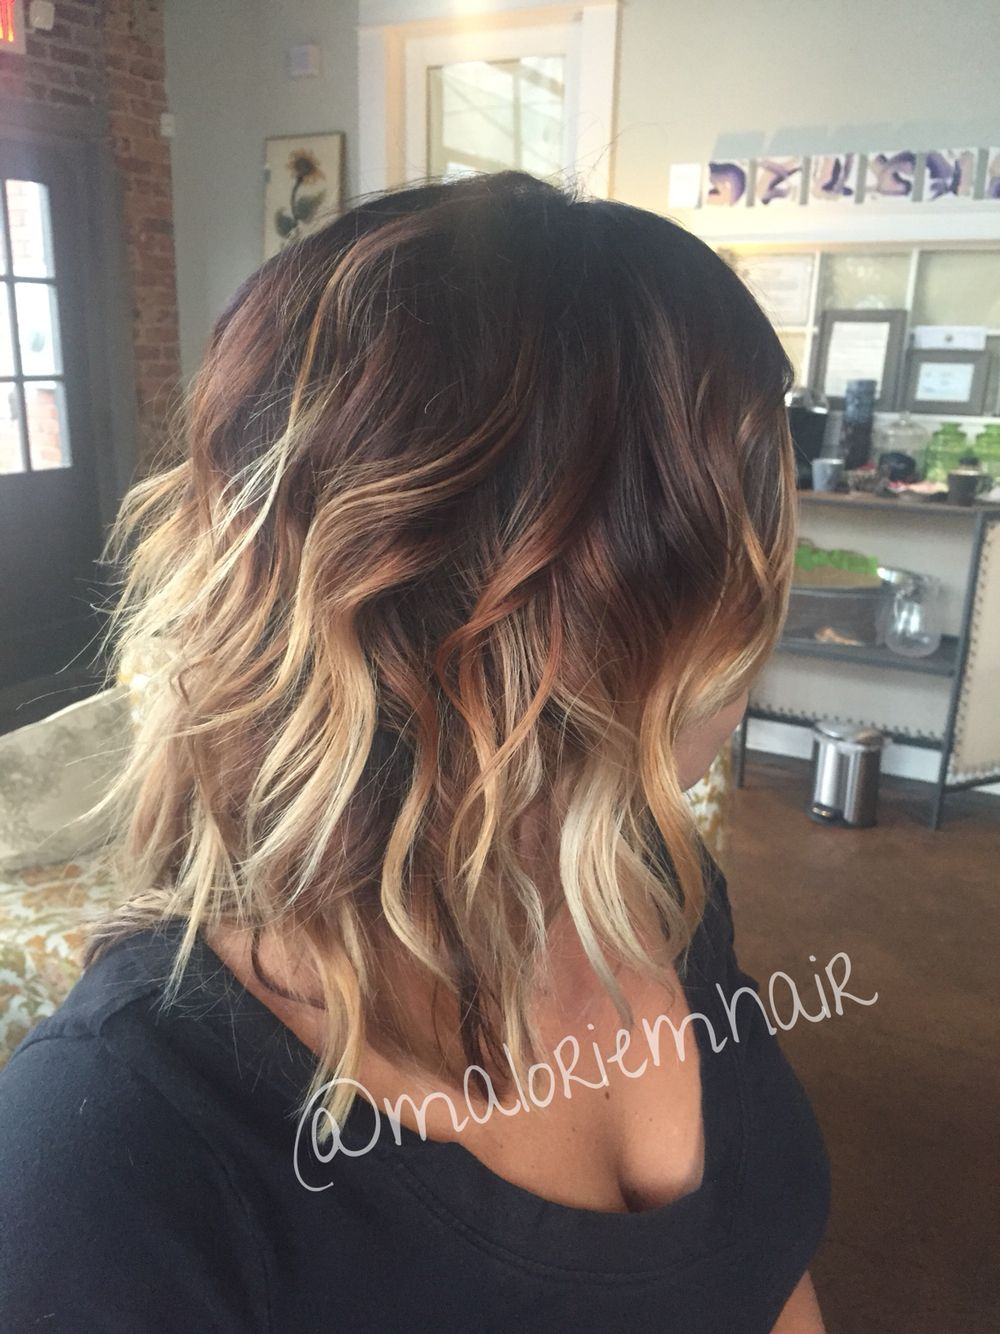 color melt ombre balayage hair hair by me pinterest frisur haar und haar ideen. Black Bedroom Furniture Sets. Home Design Ideas